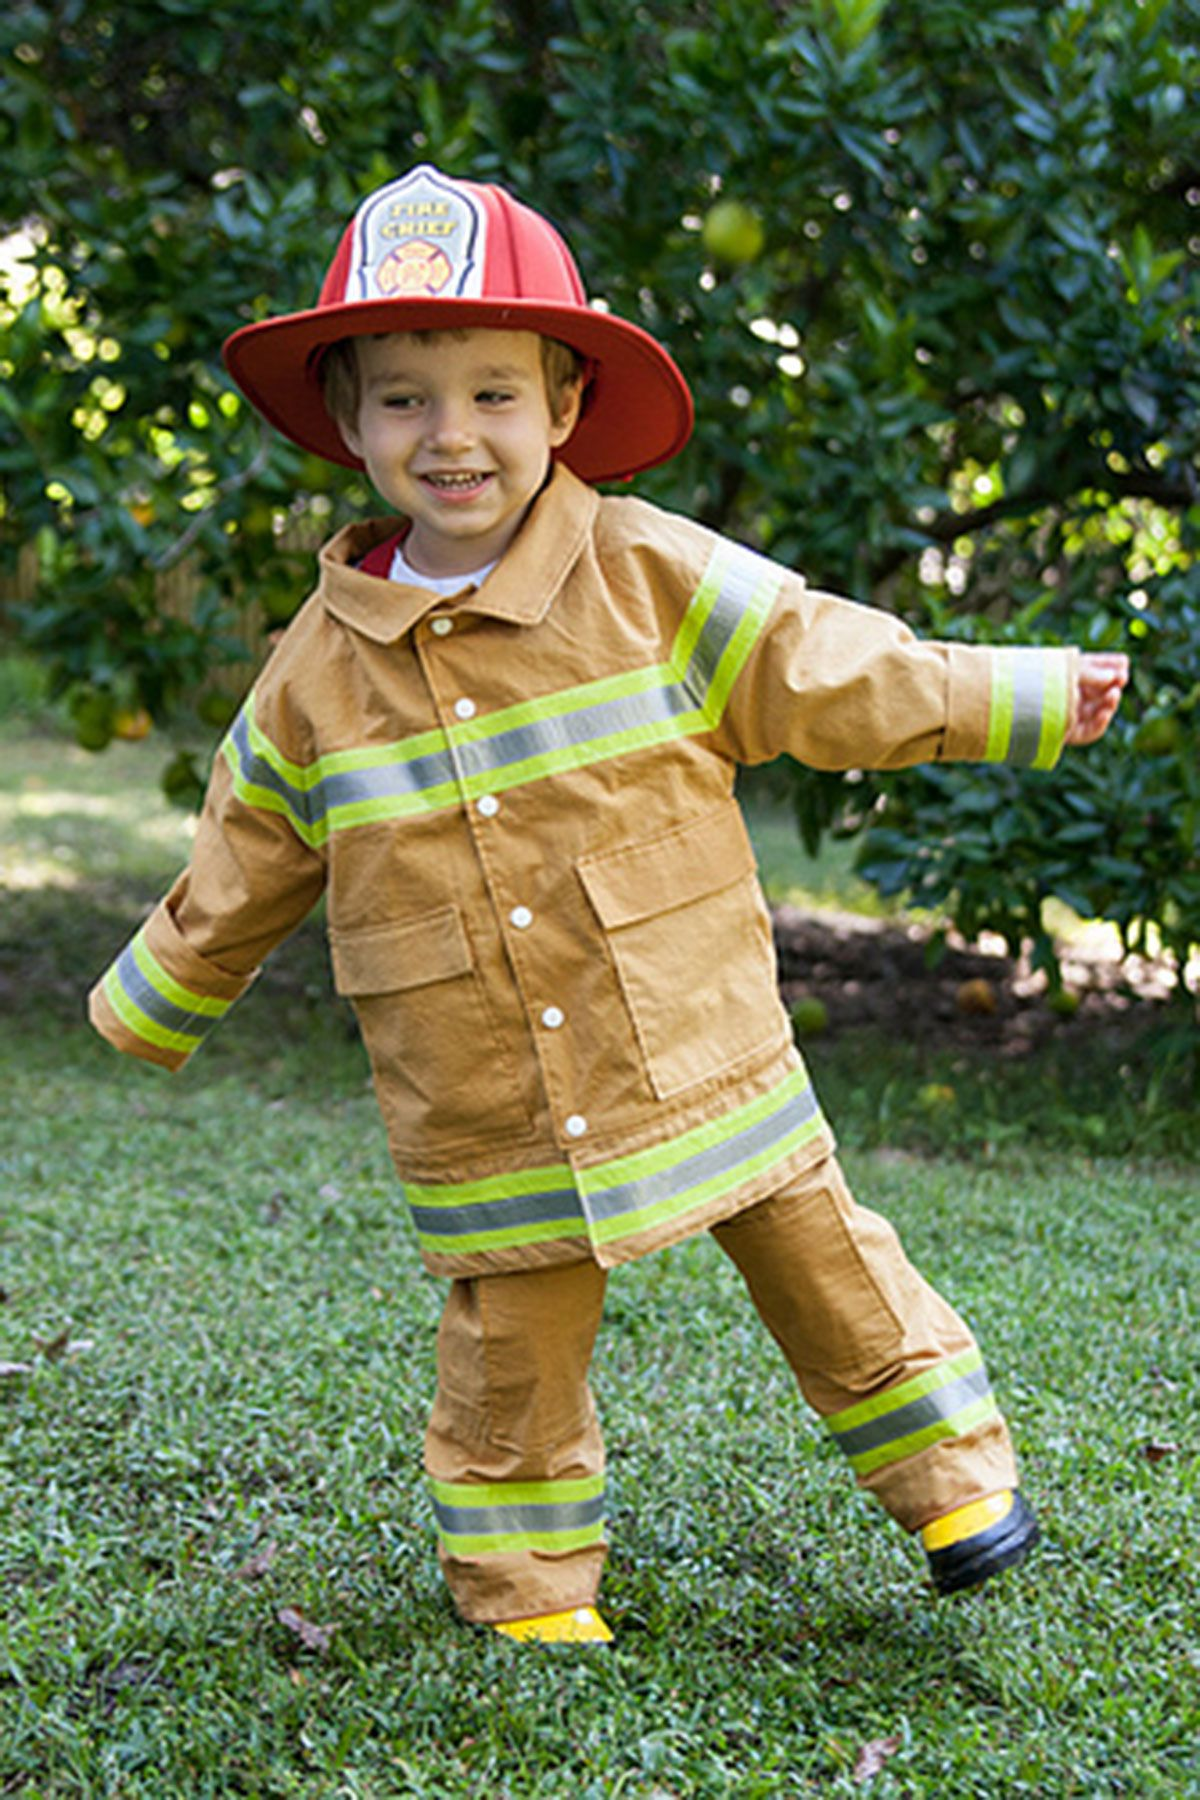 70 homemade halloween costumes for kids easy diy kids halloween 70 homemade halloween costumes for kids easy diy kids halloween costume ideas 2018 solutioingenieria Image collections